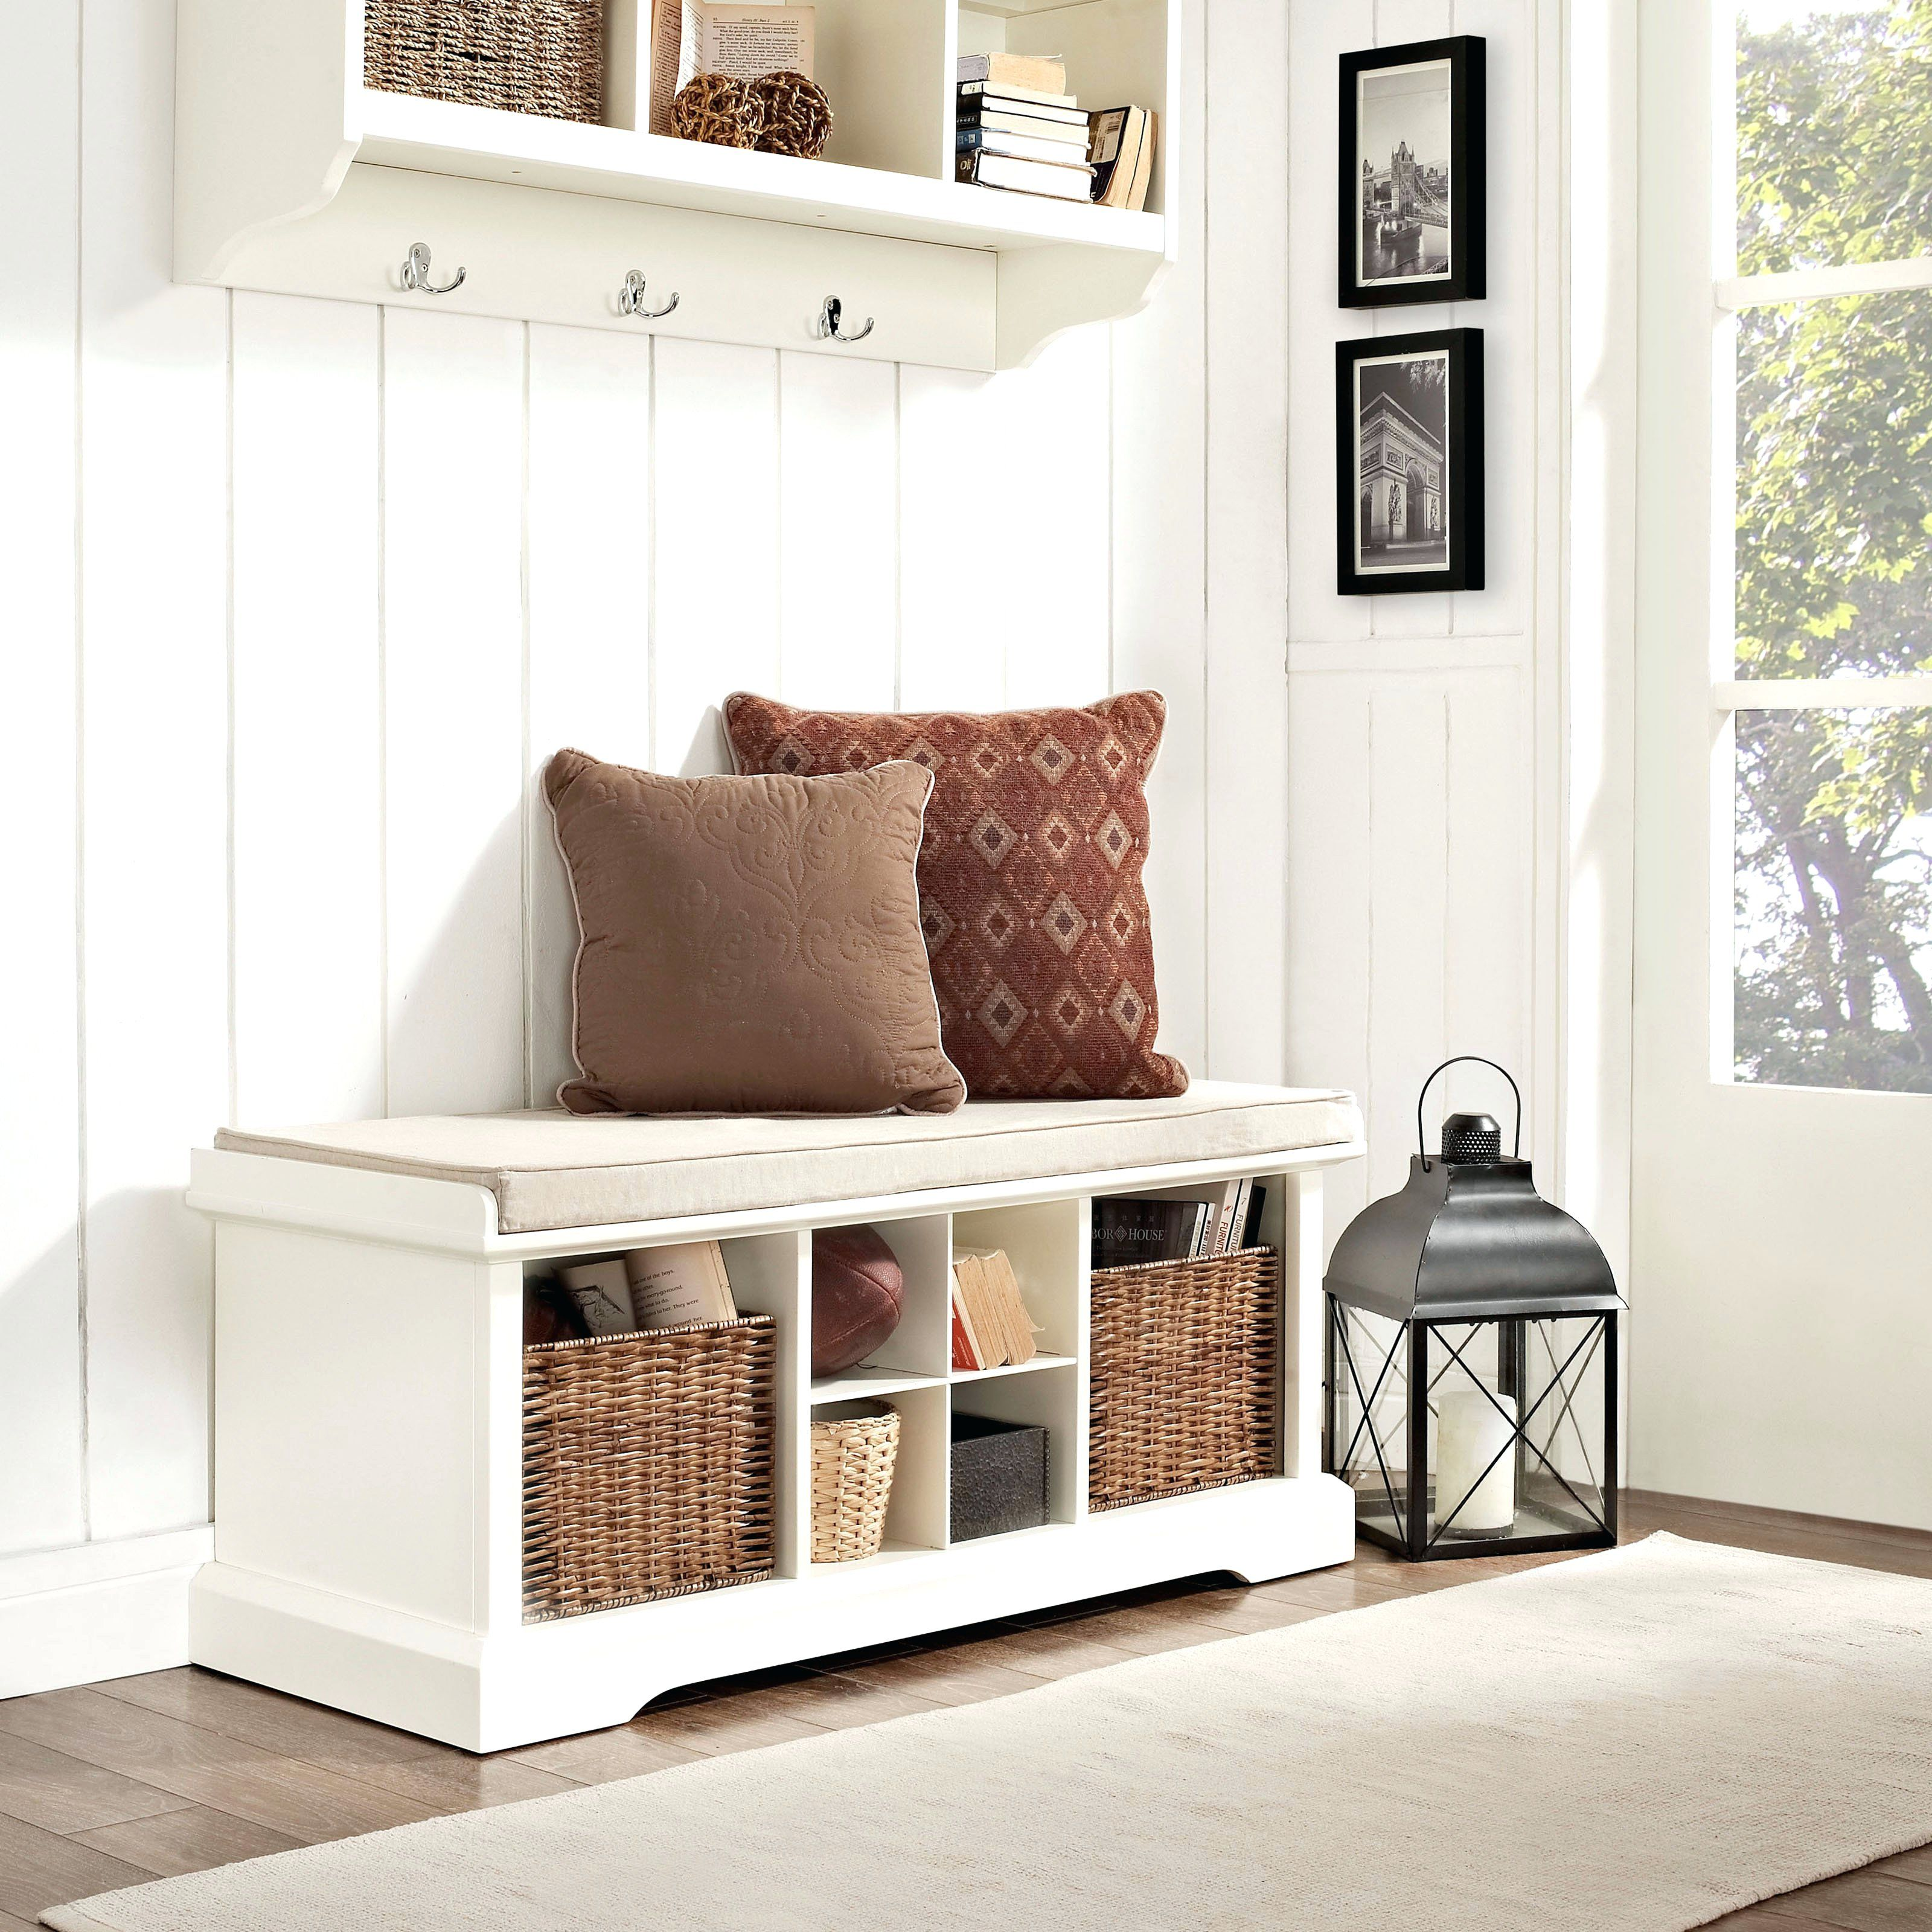 Ana white entryway bench full image for entry storage benches 122 excellent concept for entry hall storage benches white entryway bench with hooks white